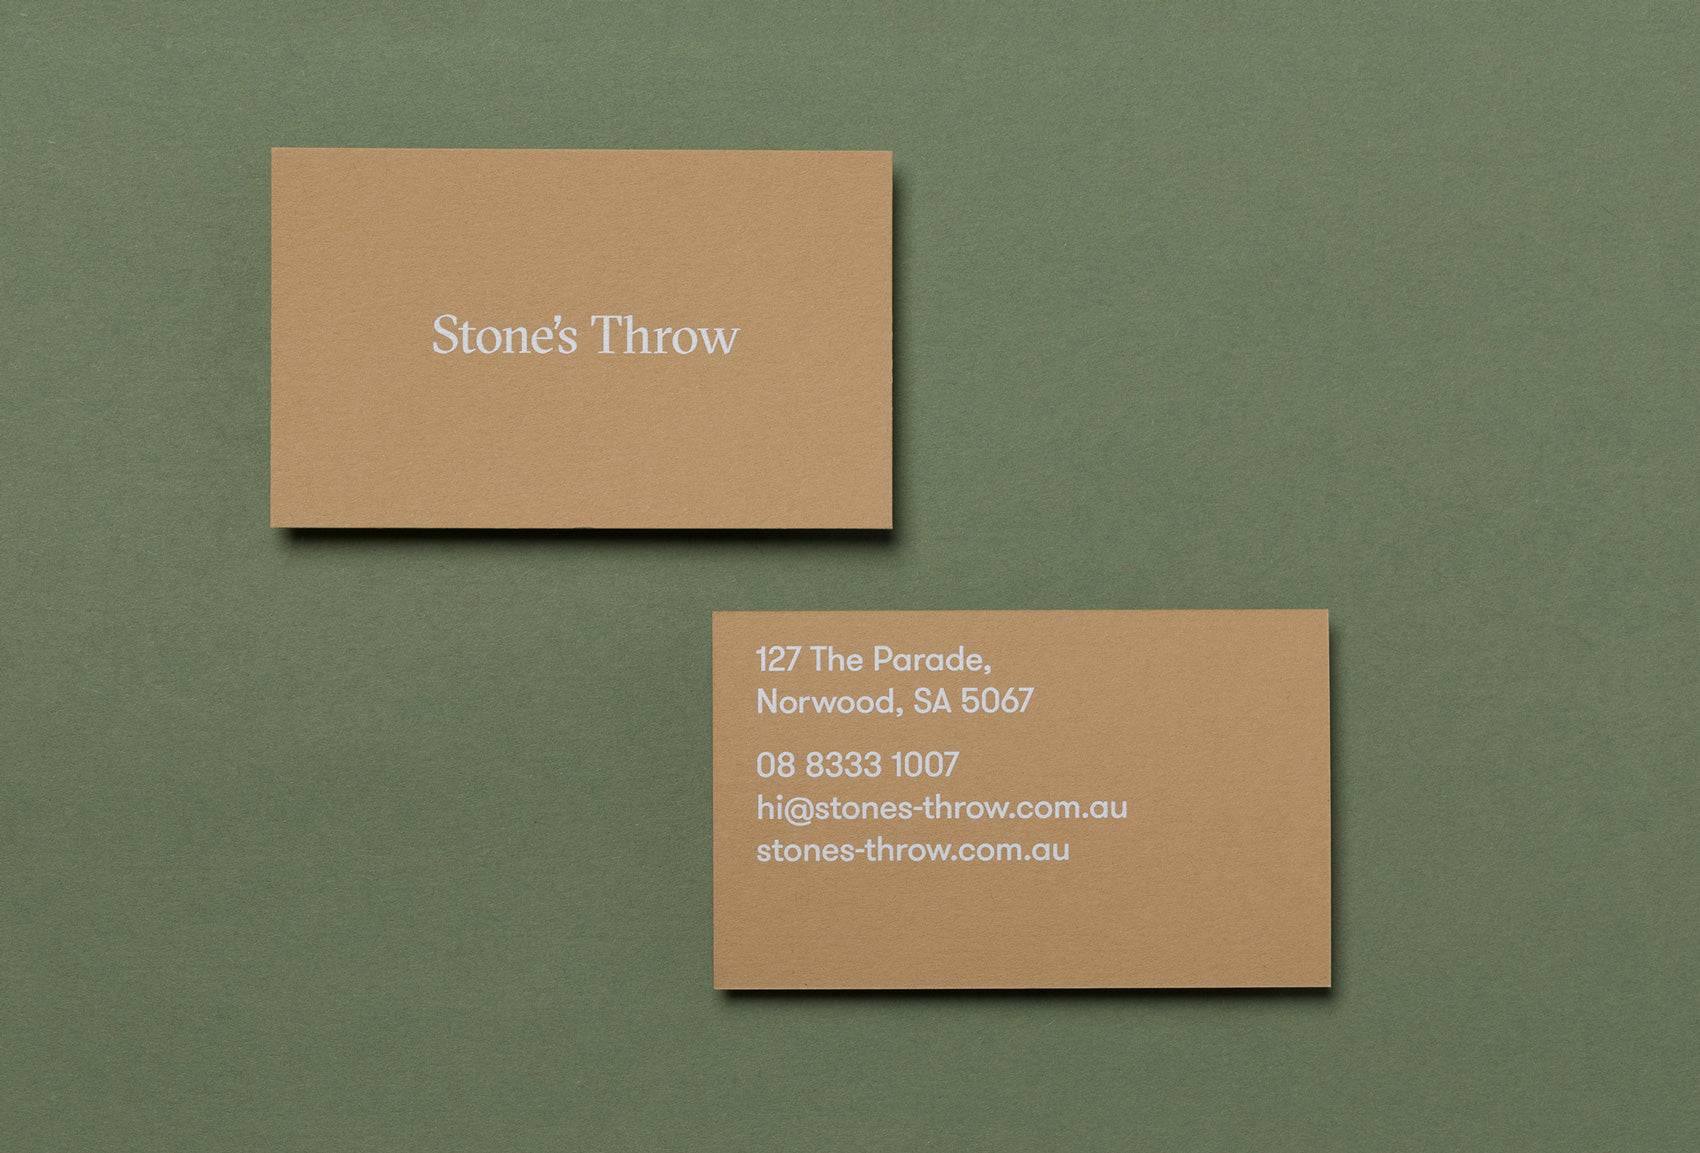 Stones throw business card design